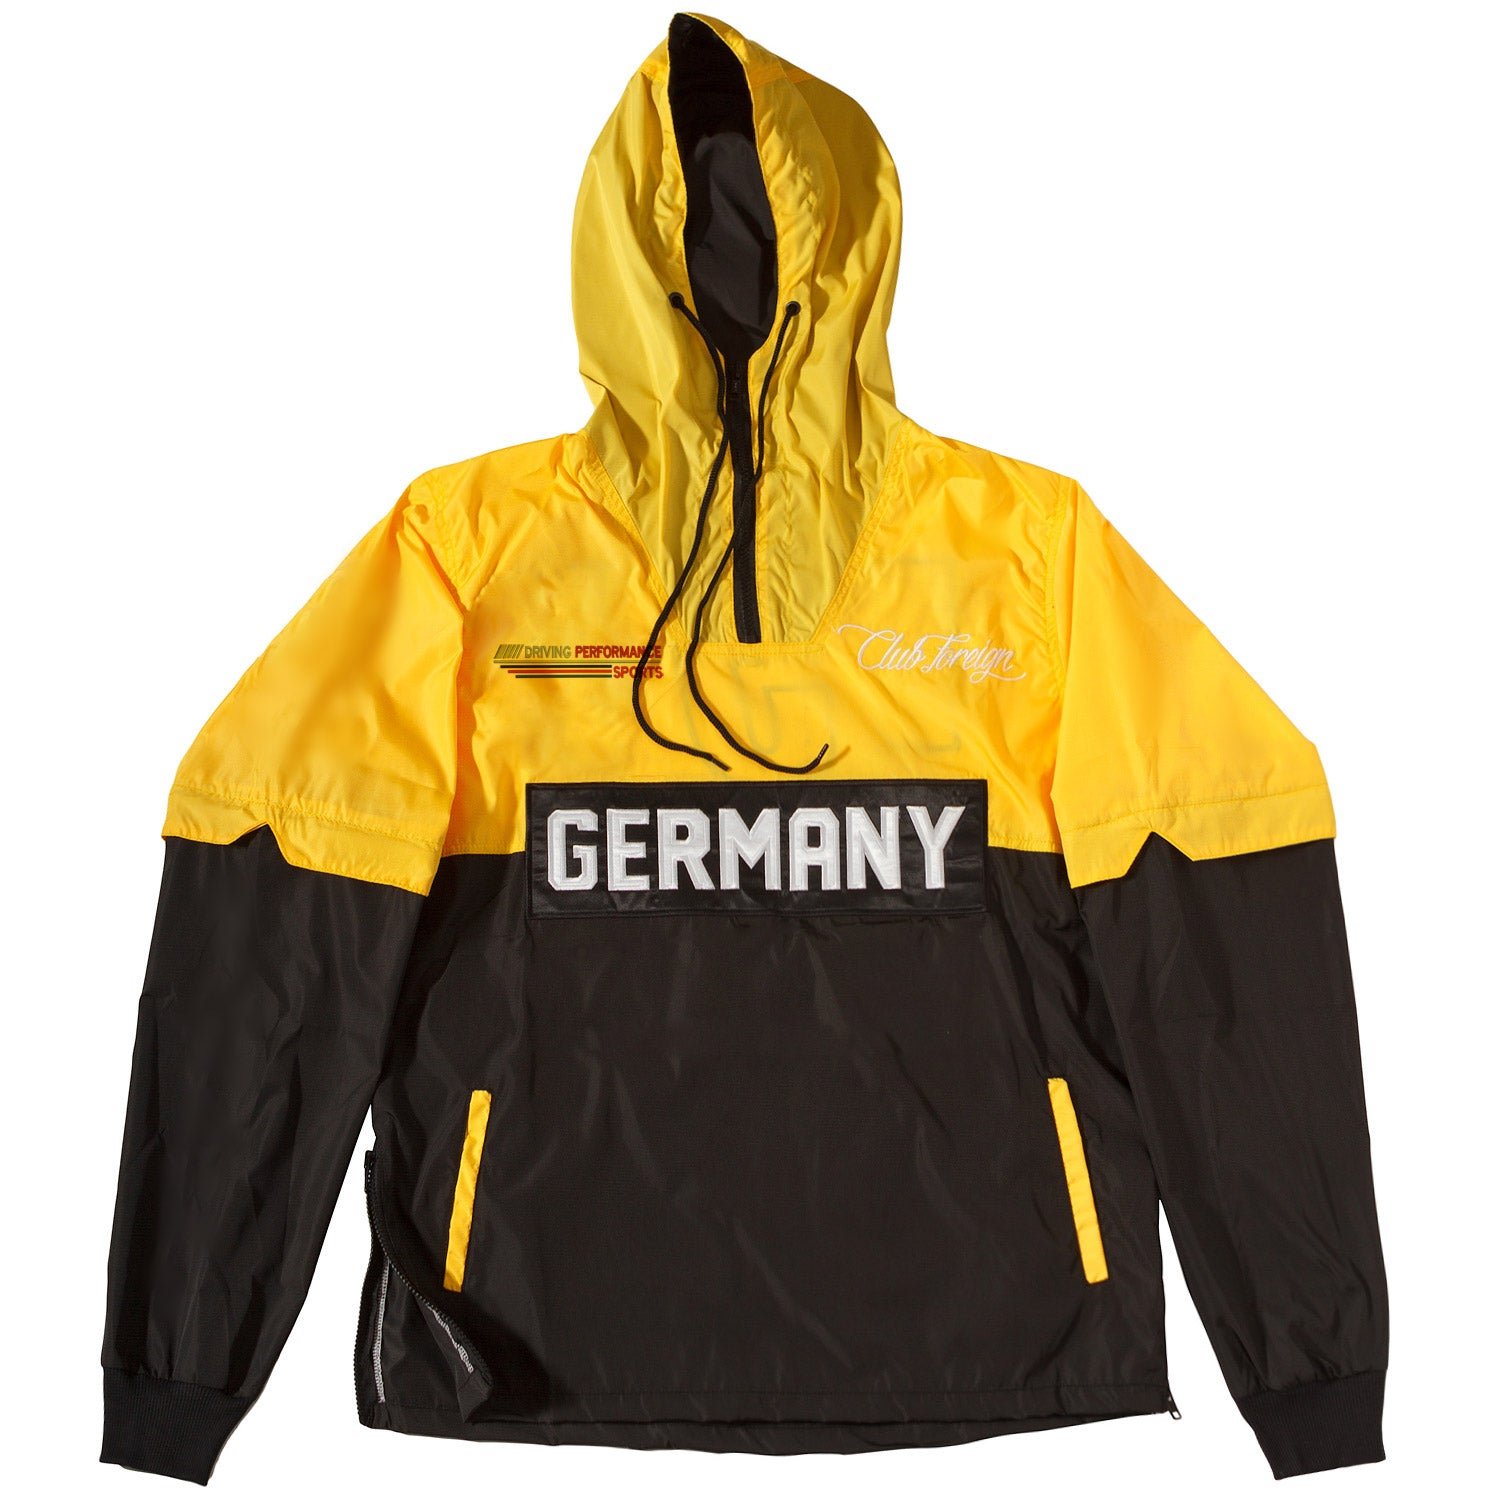 ClubForeign Performance Windbreaker Jacket Yellow Black - Trends Society